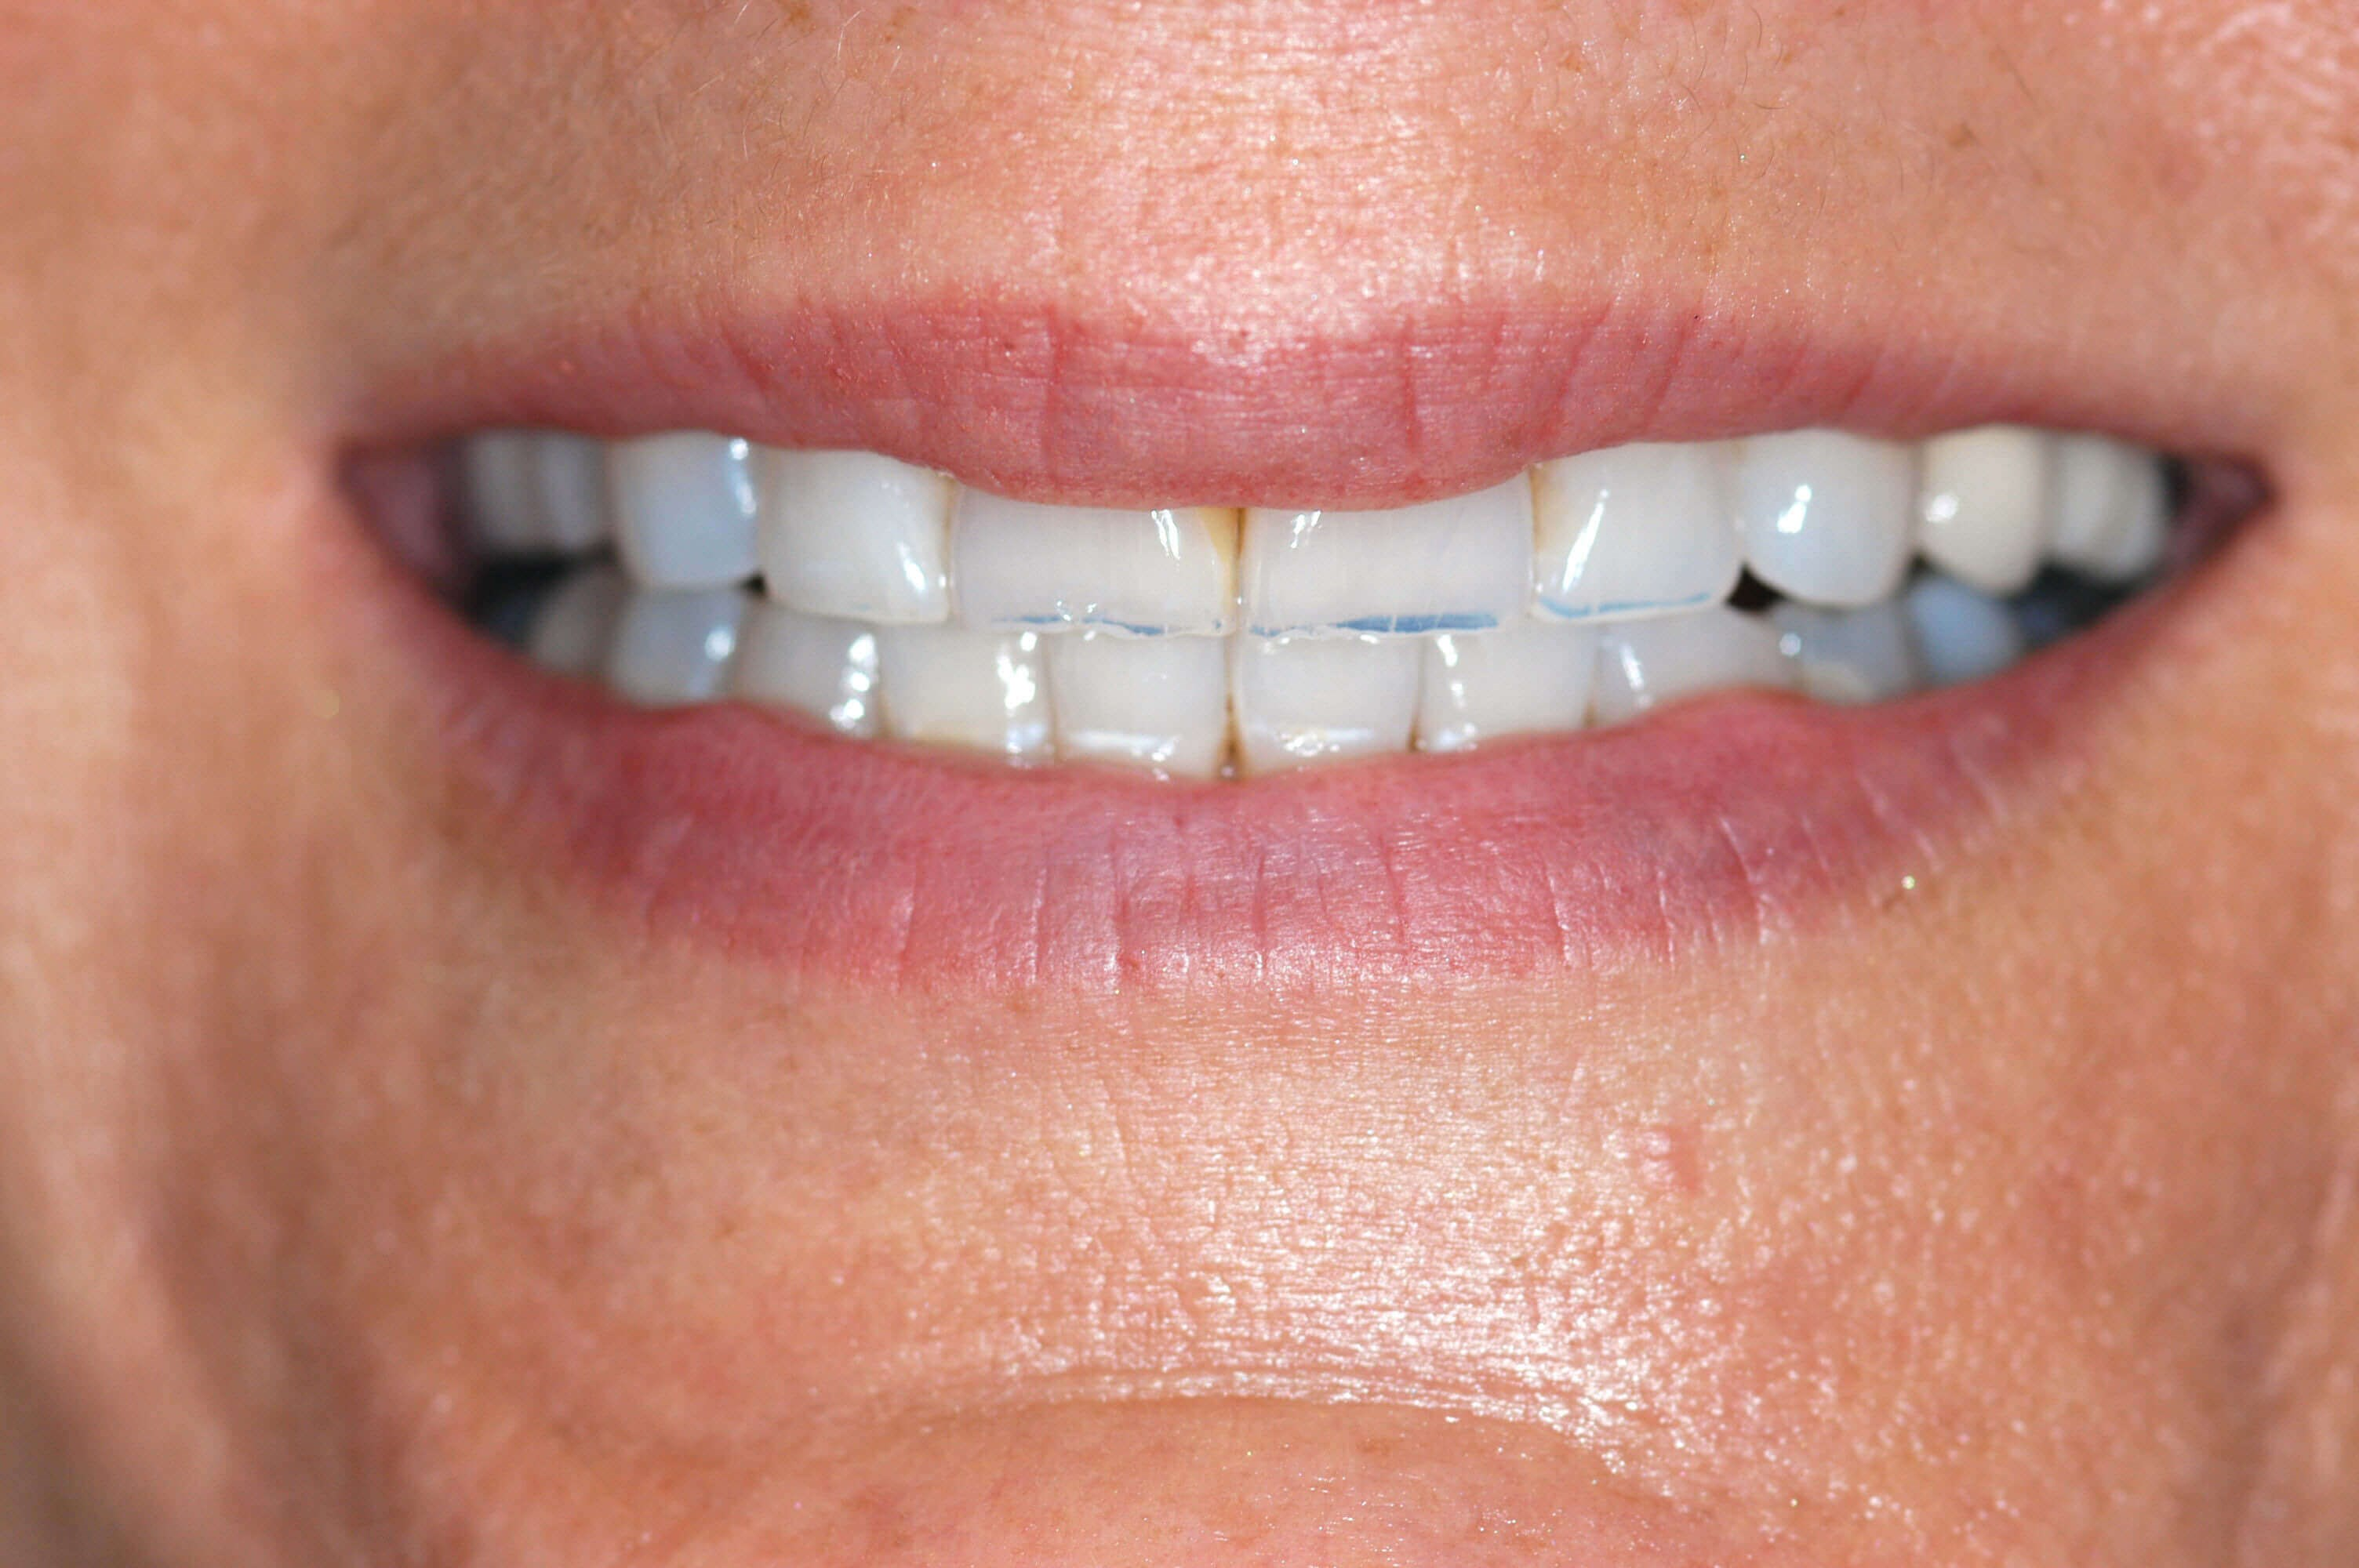 Before & After Dental Veneers Before Veneers